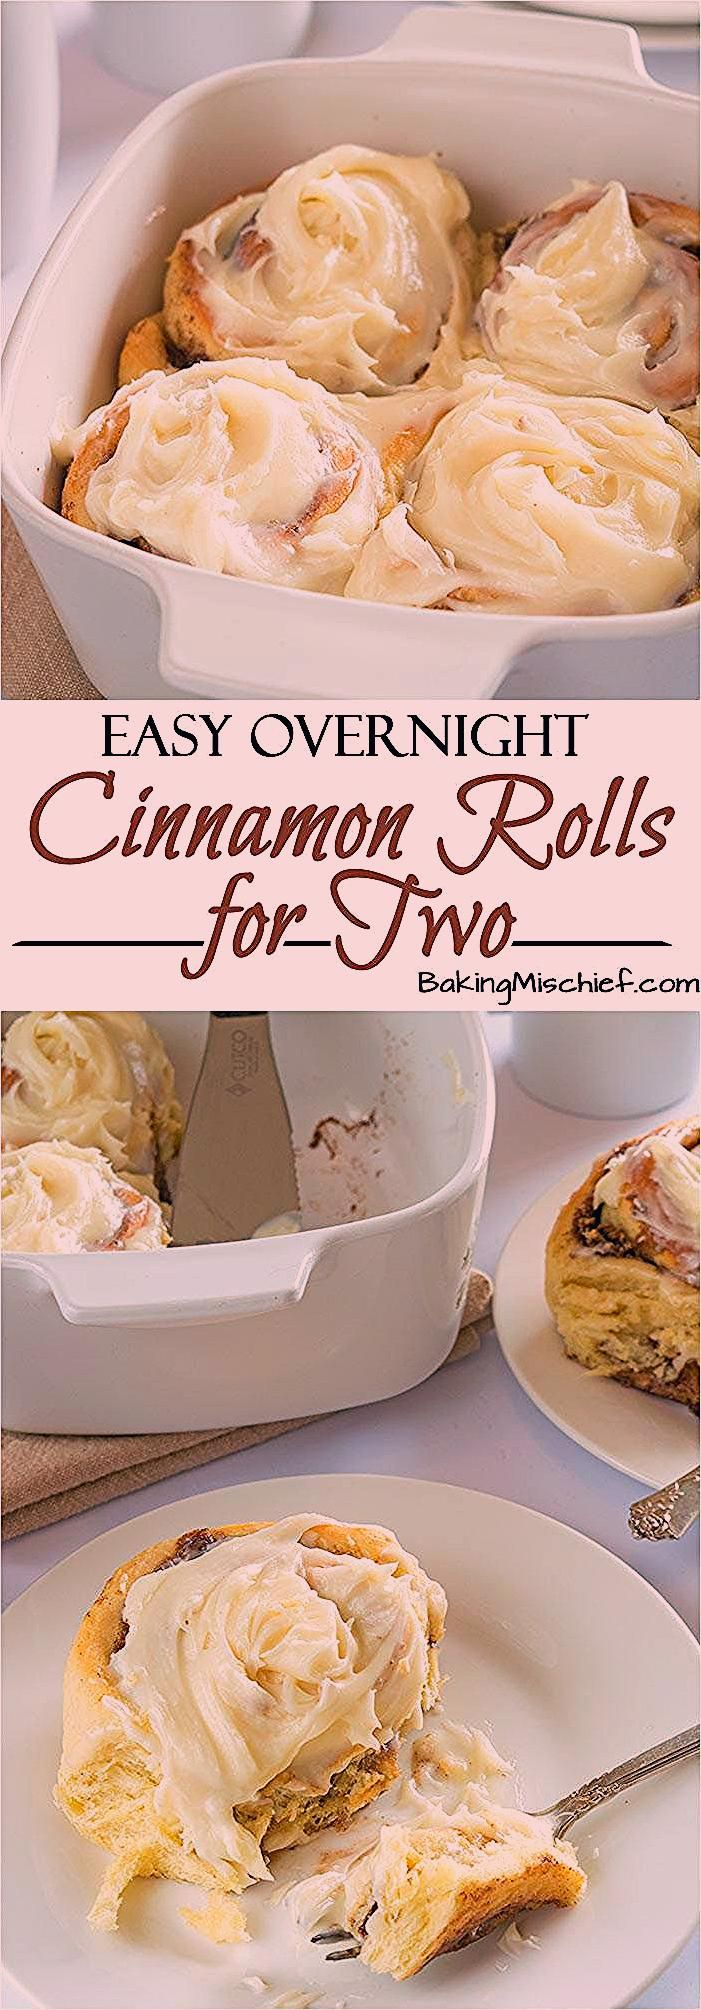 Photo of Easy Overnight Cinnamon Rolls for Two